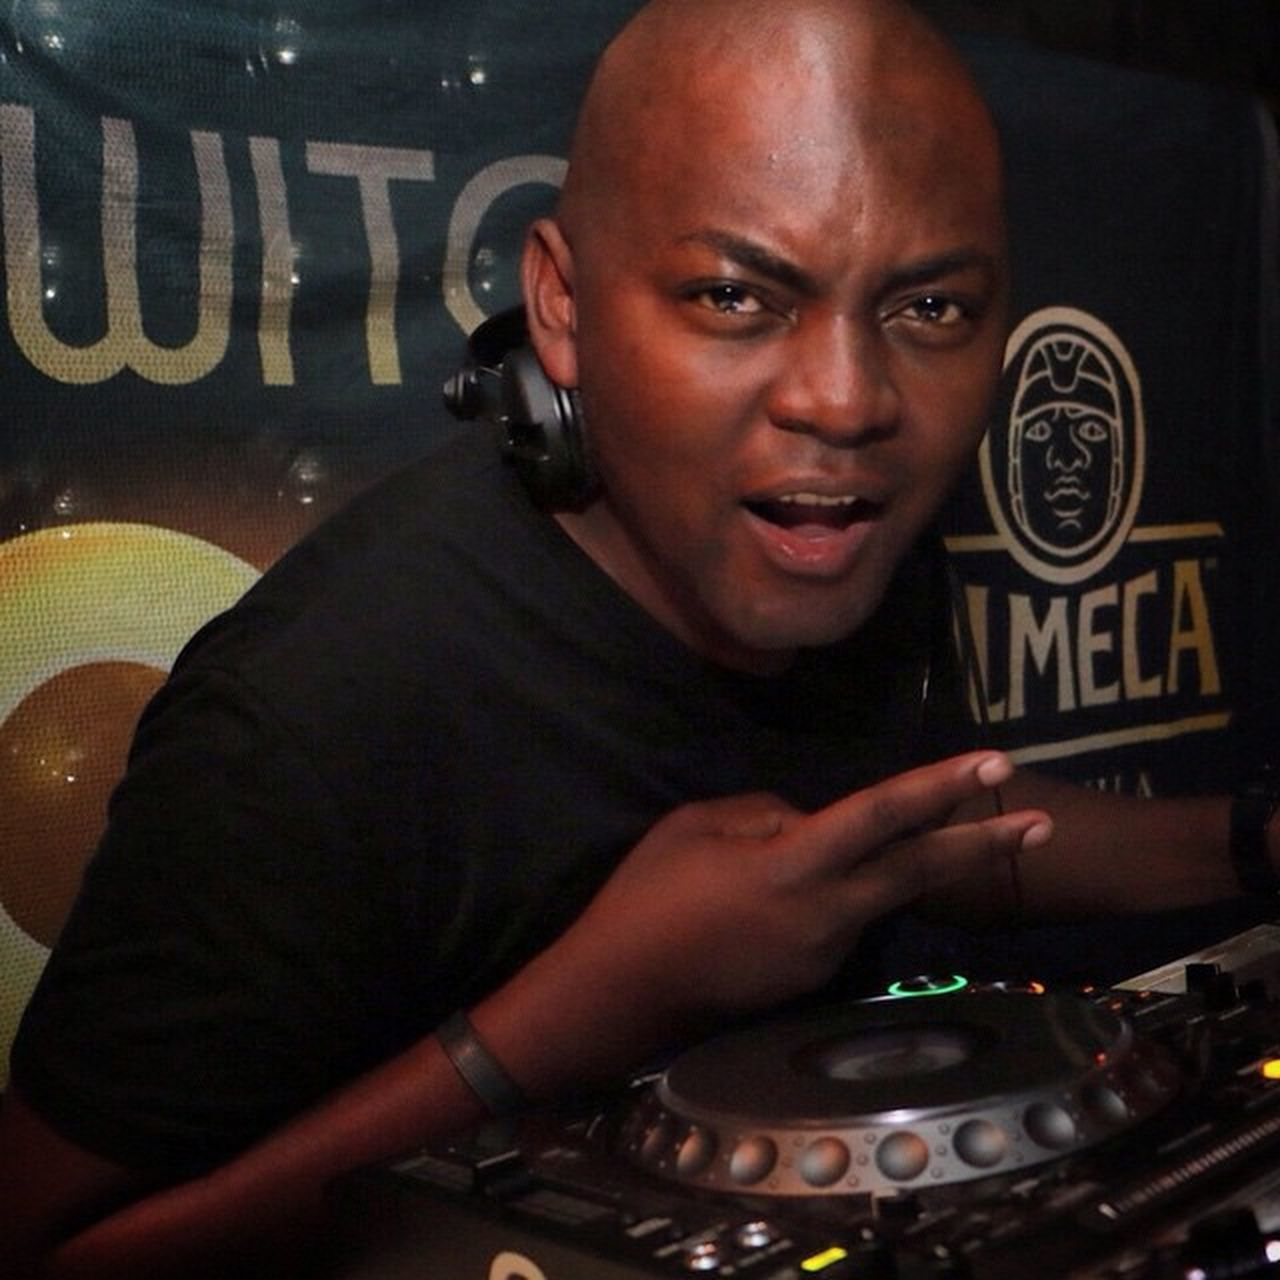 @euphonik absolutely killed it last night at the Zzolmecamayhem party at @ballizza It ain't a party without Olmeca Olmecatequila Tequila Party Music BEATS Whatacrowd